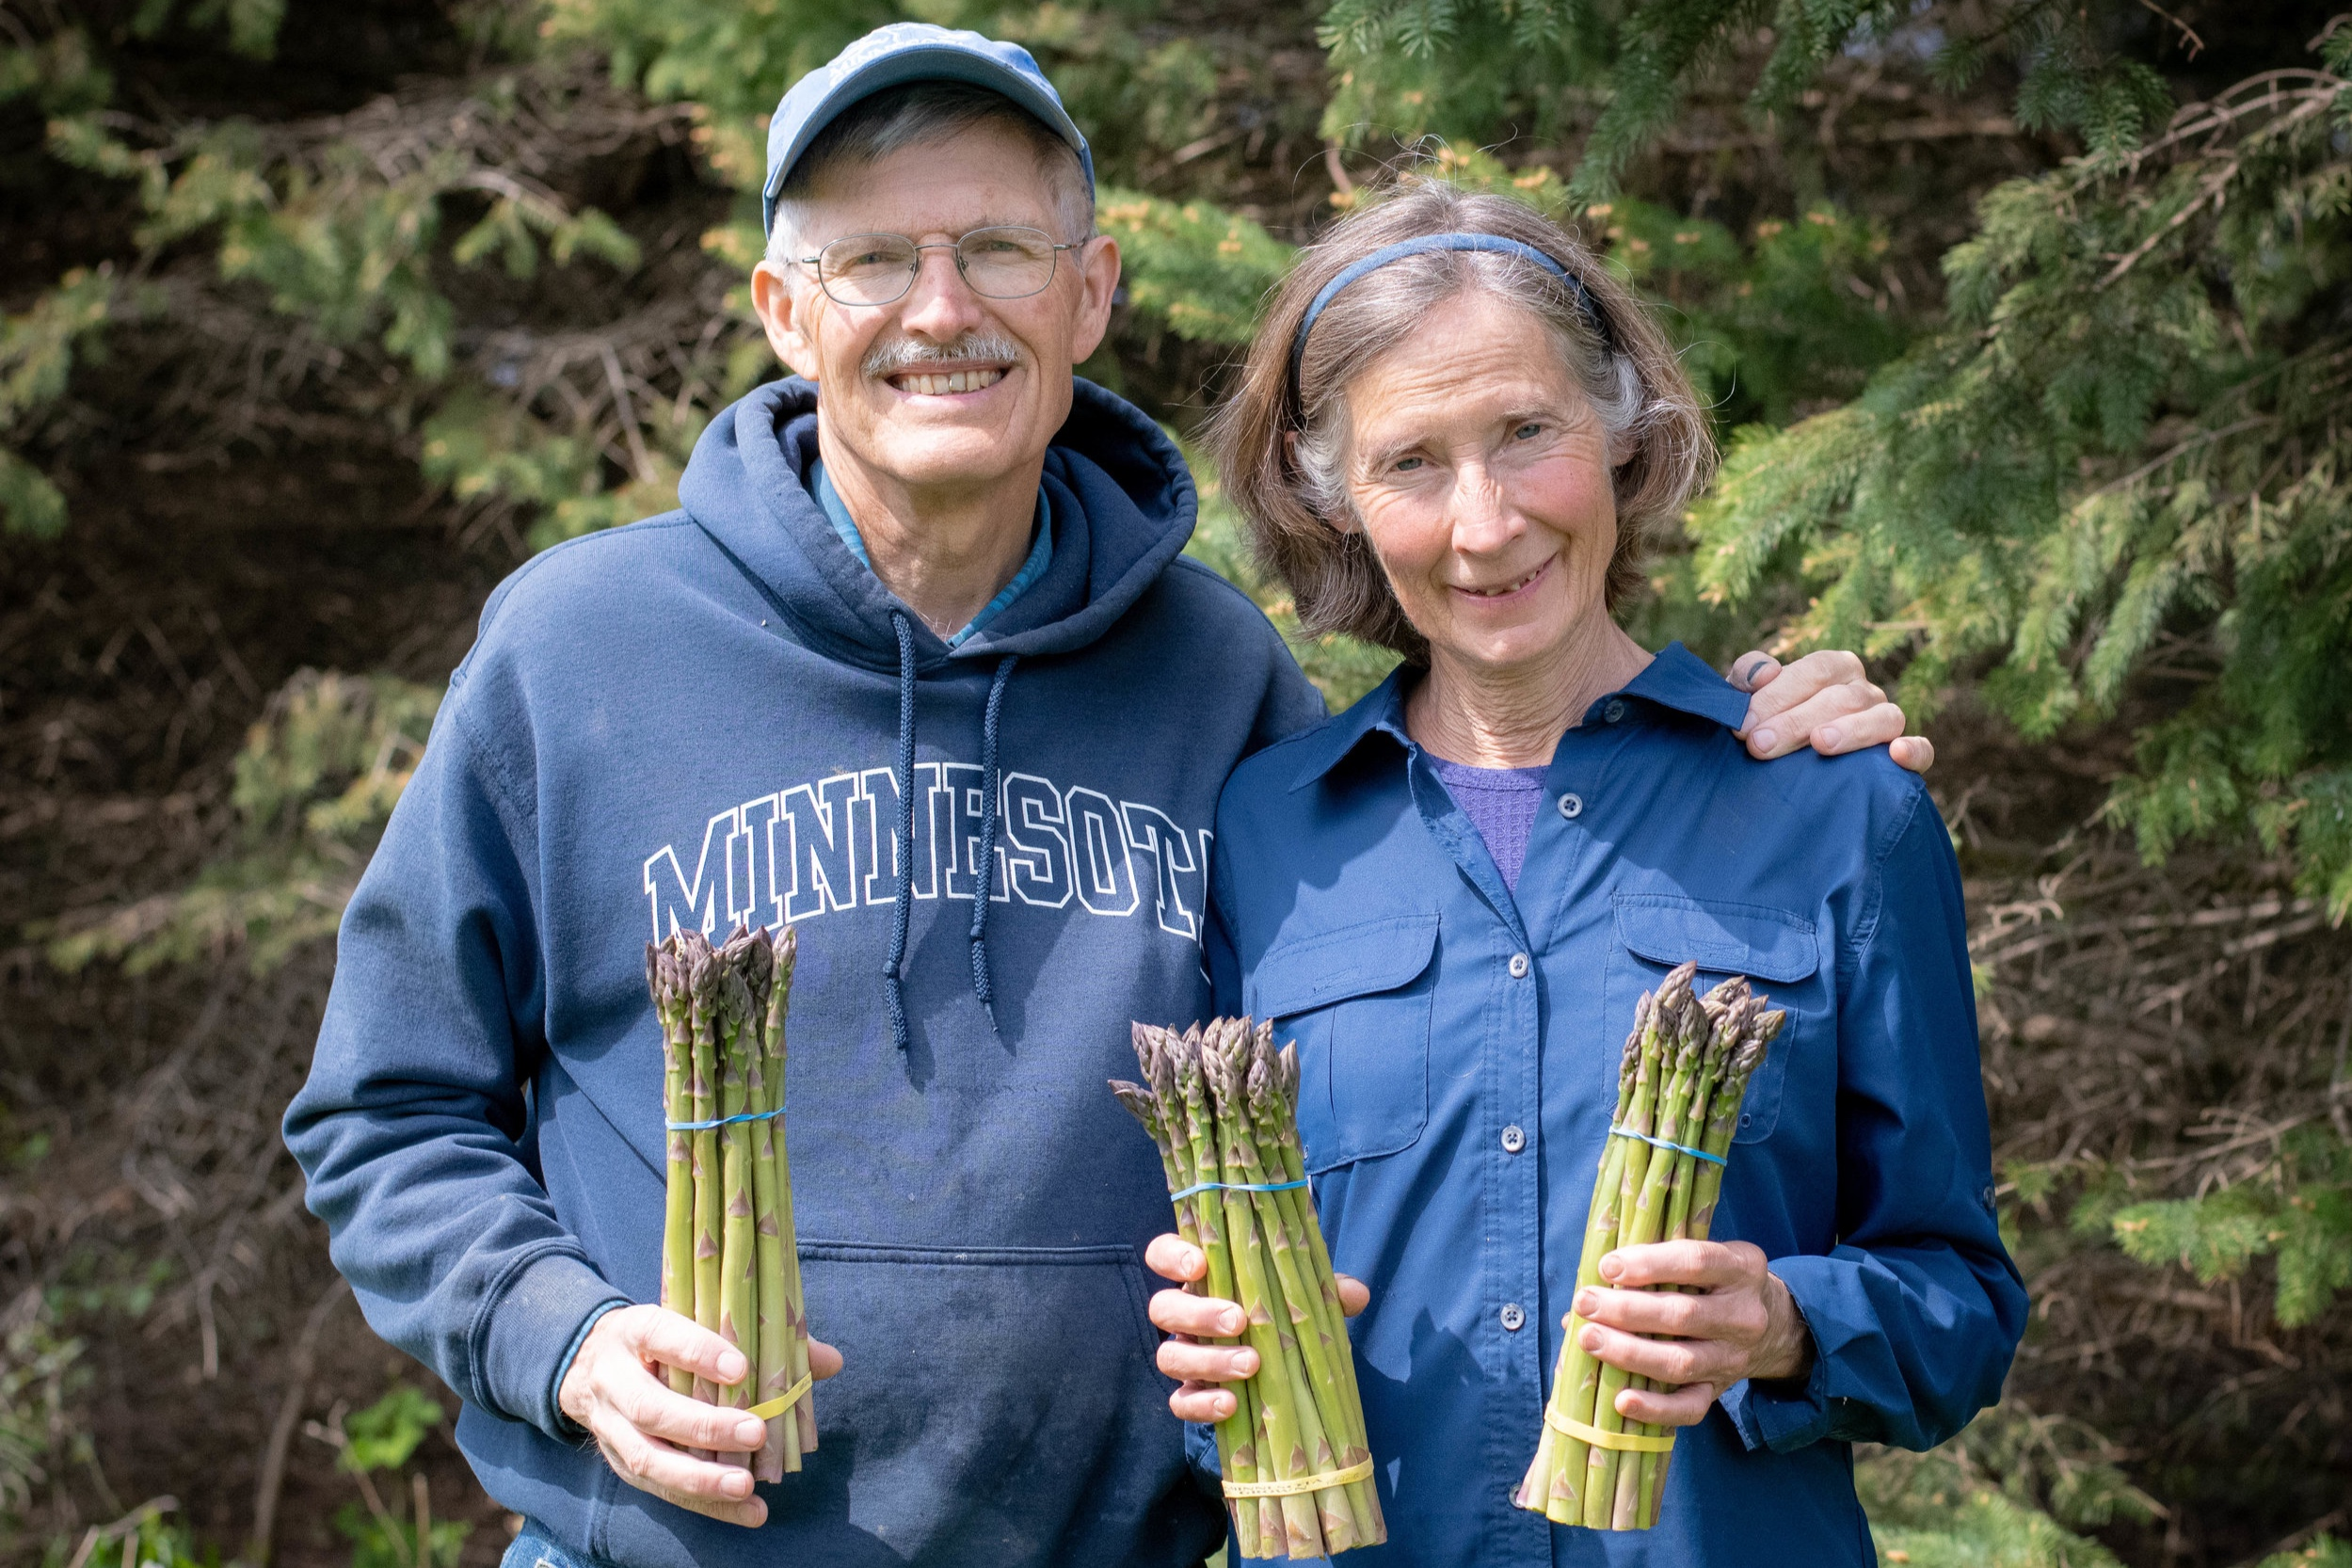 Asparagus harvest is over for 2019. We will be back next May!